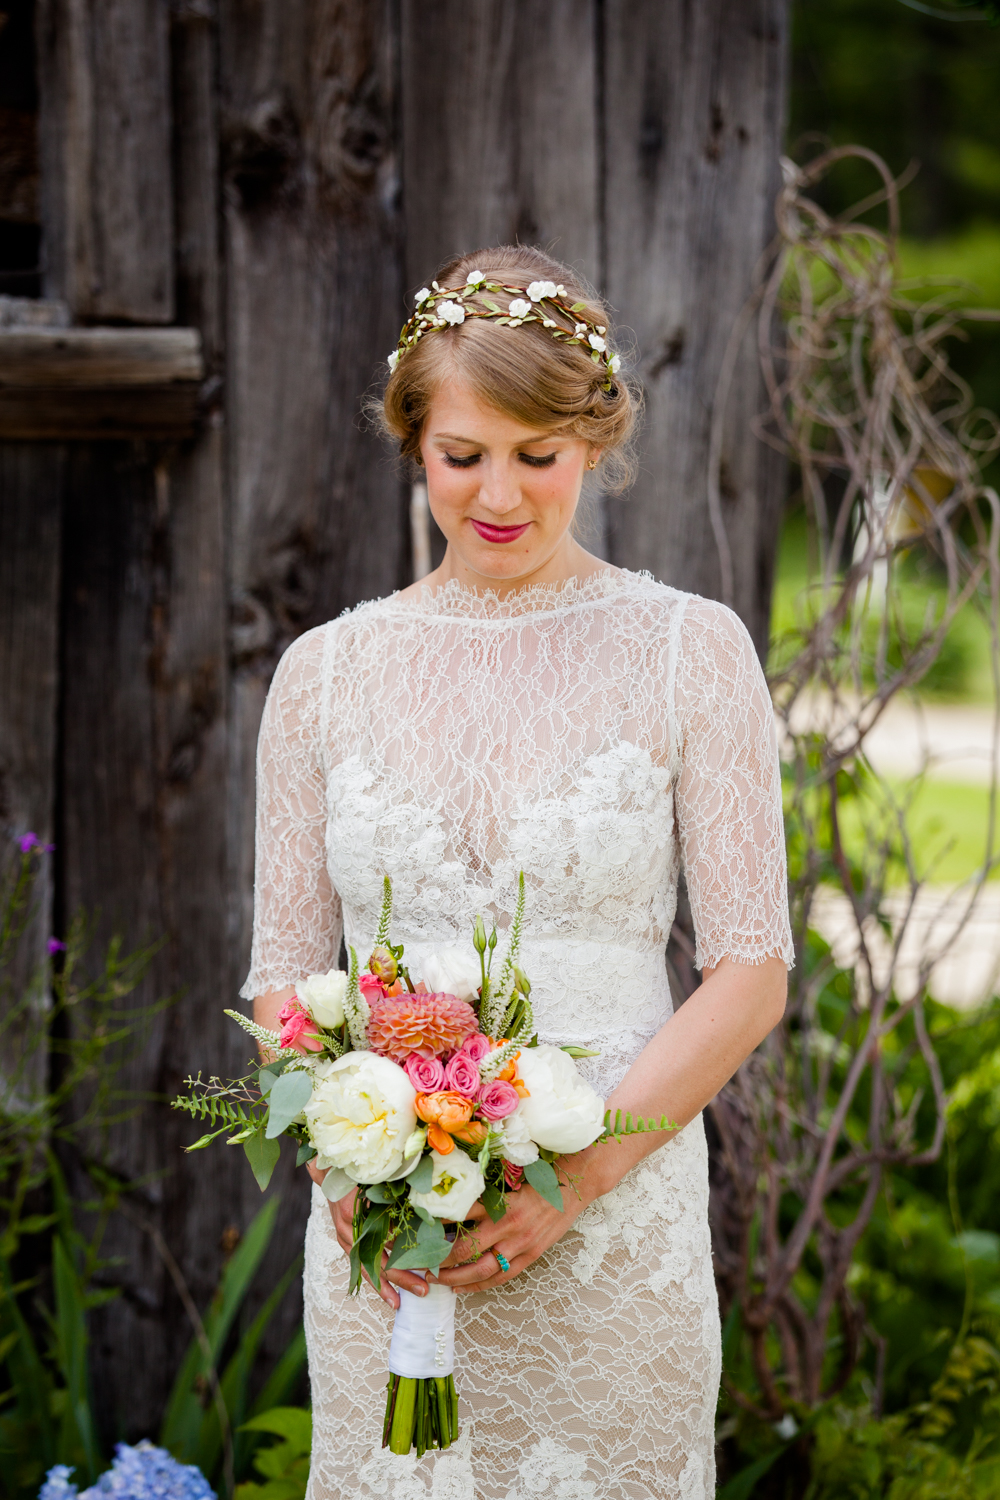 A beautiful bride gazes at her flowers